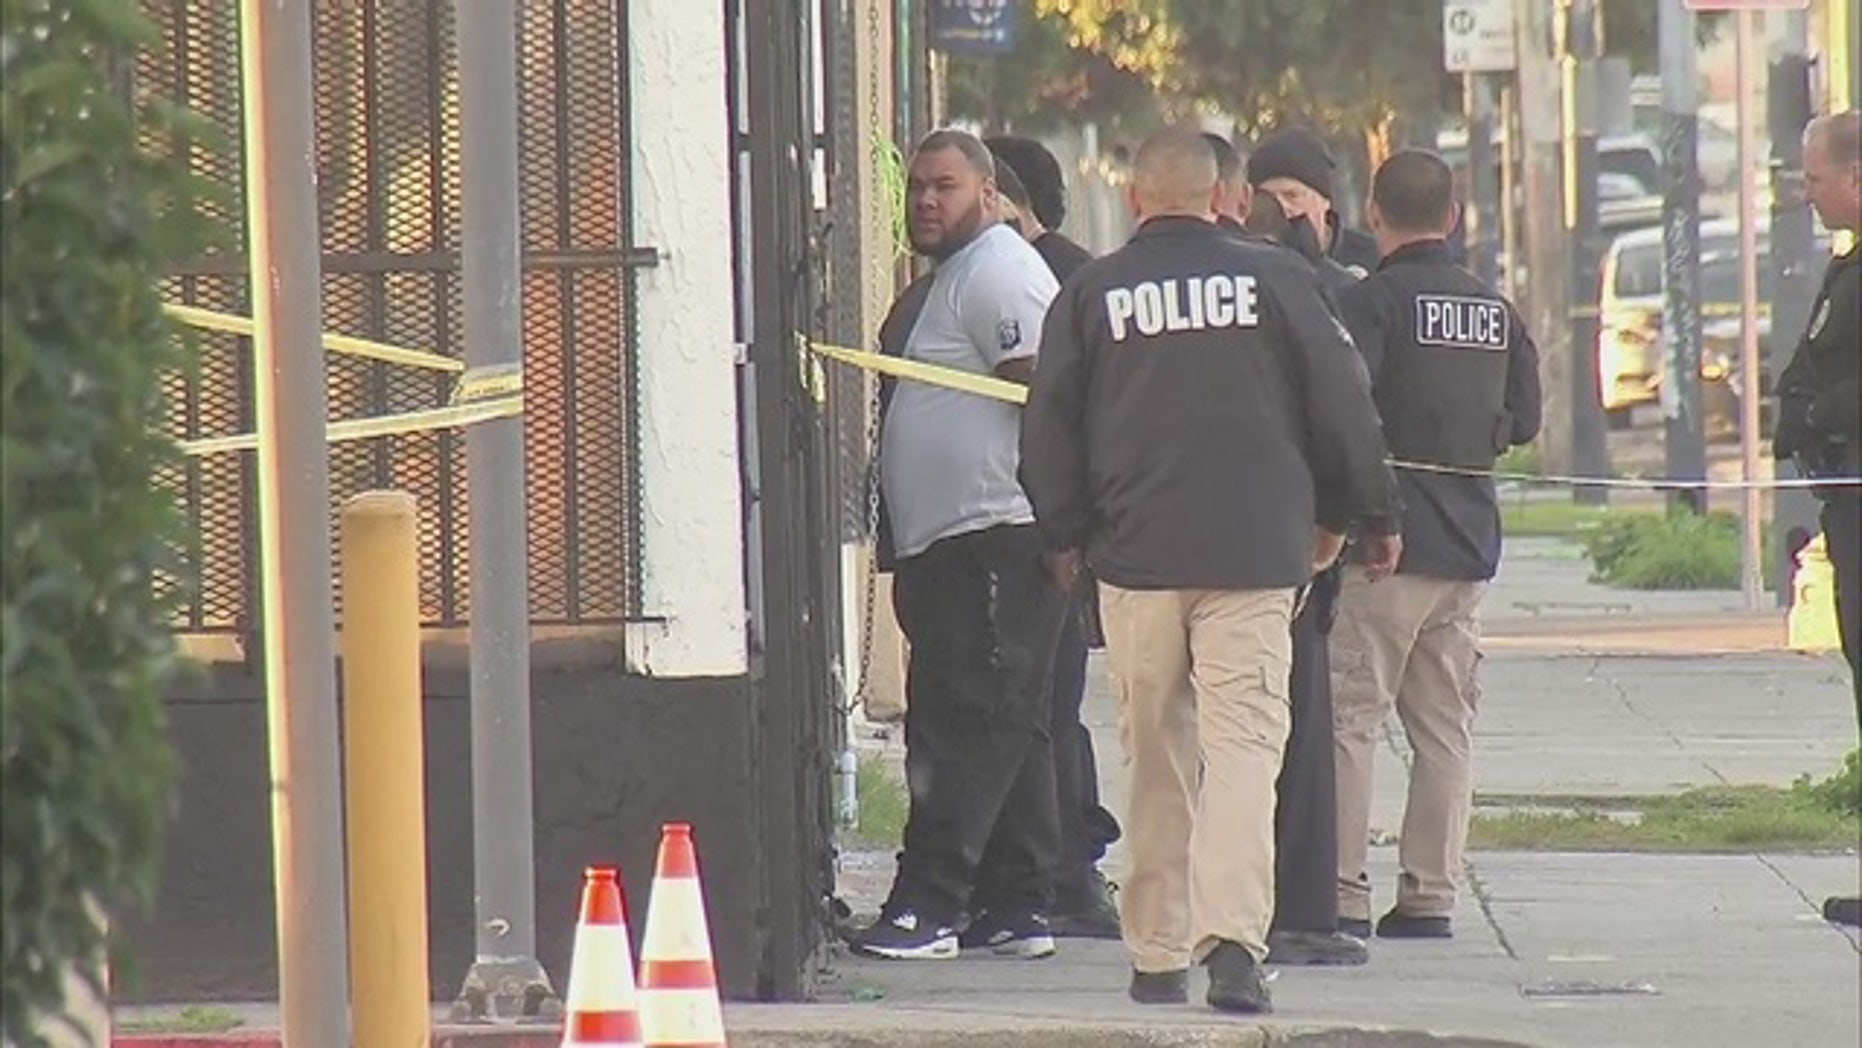 Three men were arrested after a standoff in a marijuana dispensary in Los Angeles.